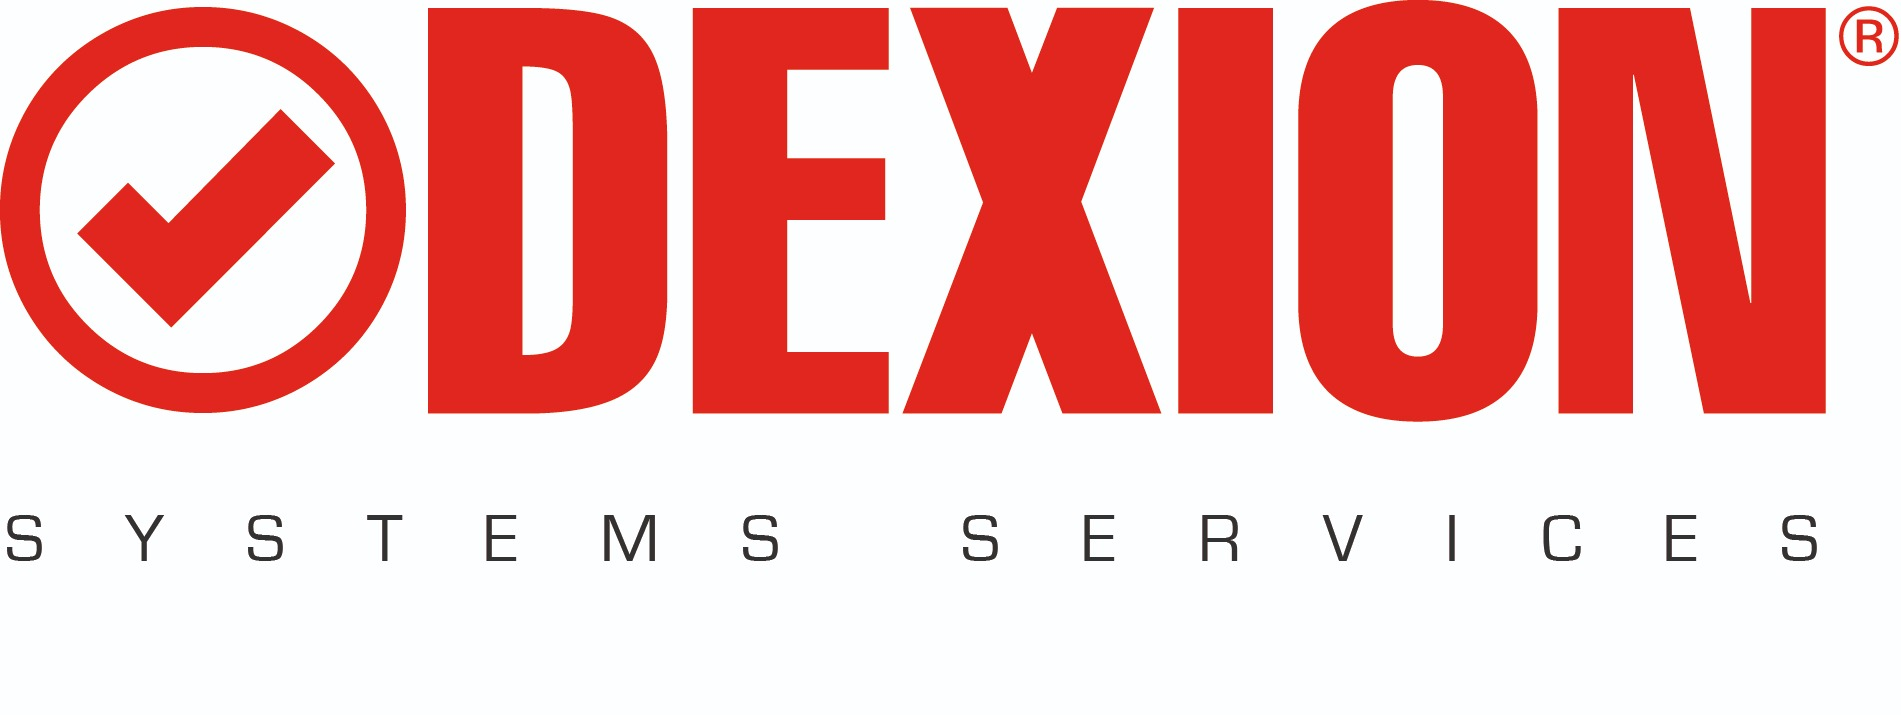 Distribution Technologies Pty Ltd T/A Dexion Systems Services